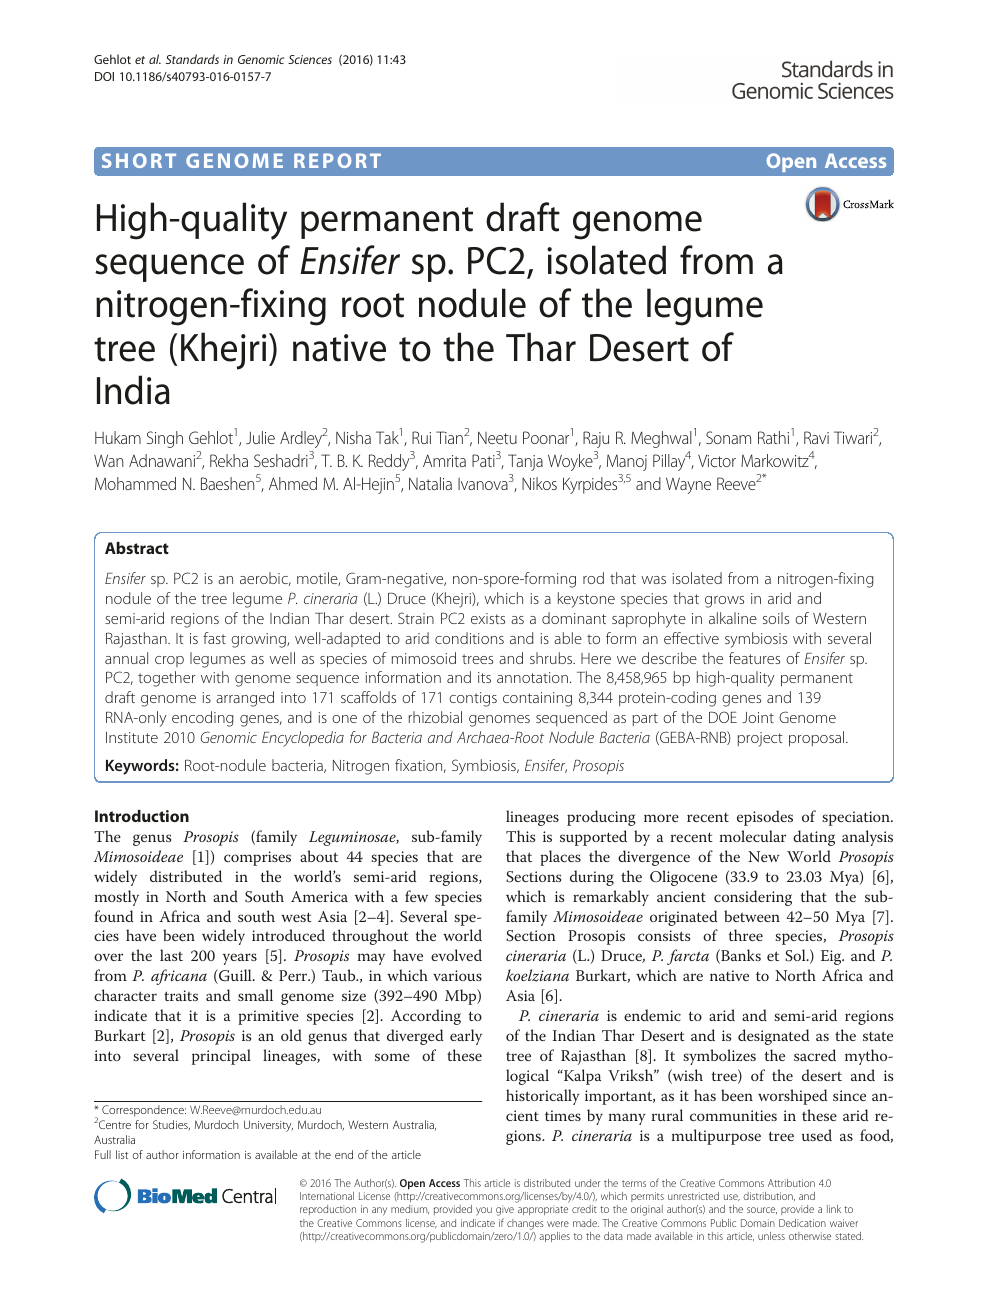 High-quality permanent draft genome sequence of Ensifer sp